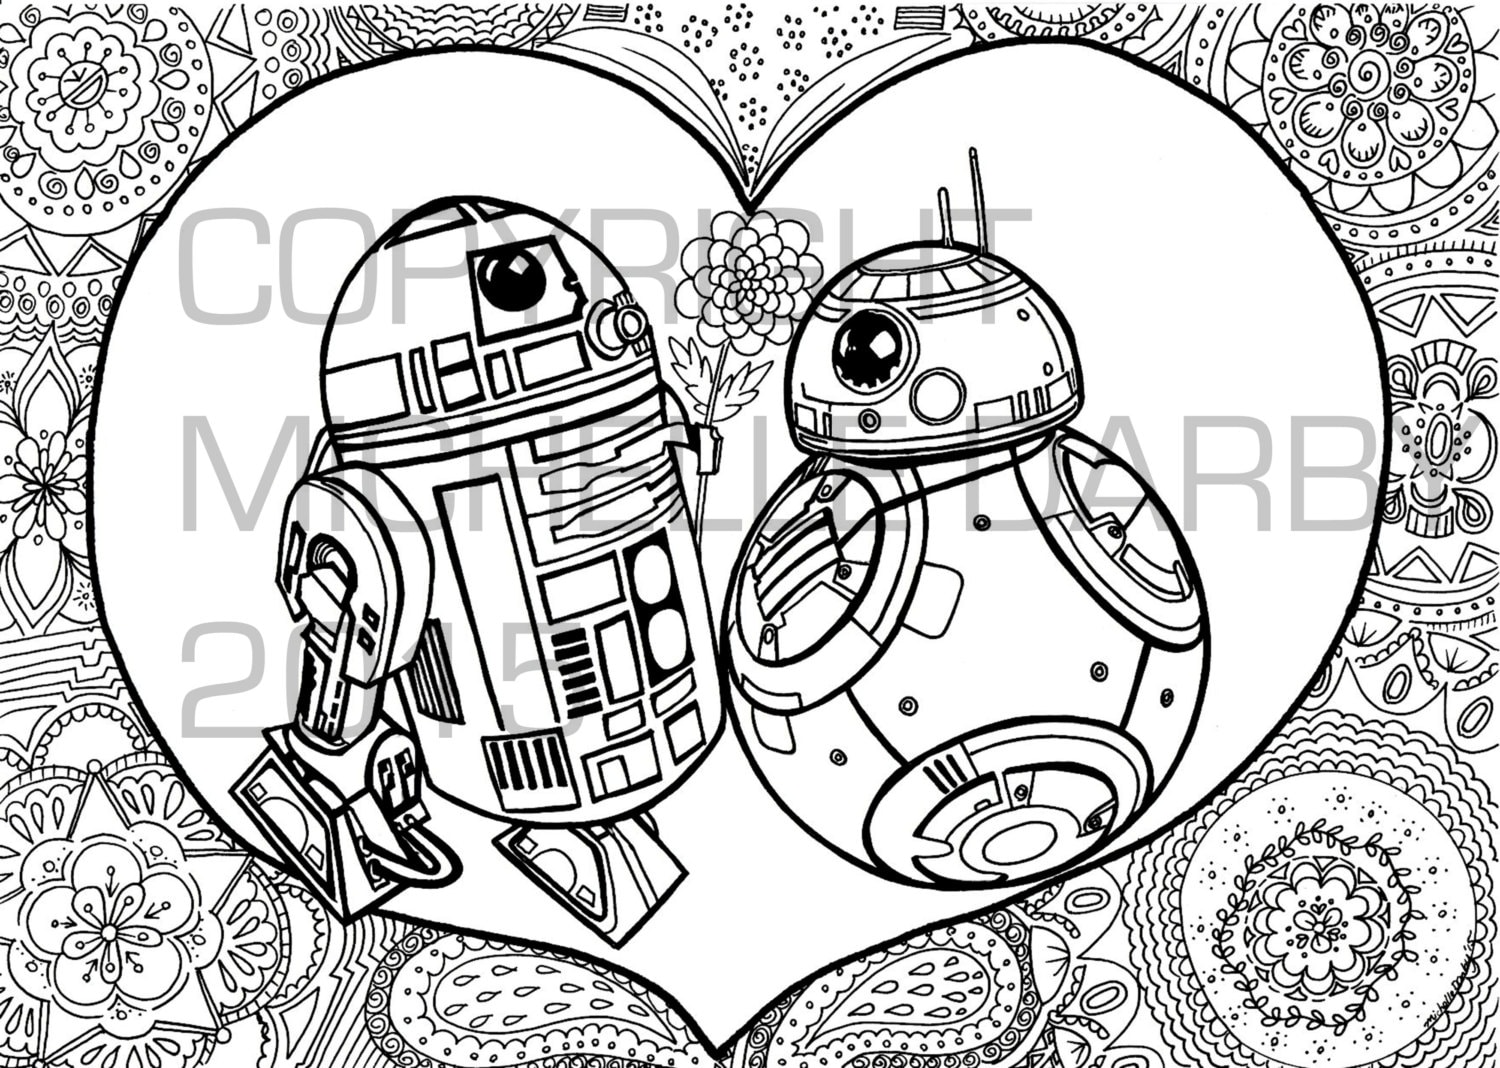 R2d2 3 bb 8 colouring page for Bb8 coloring page